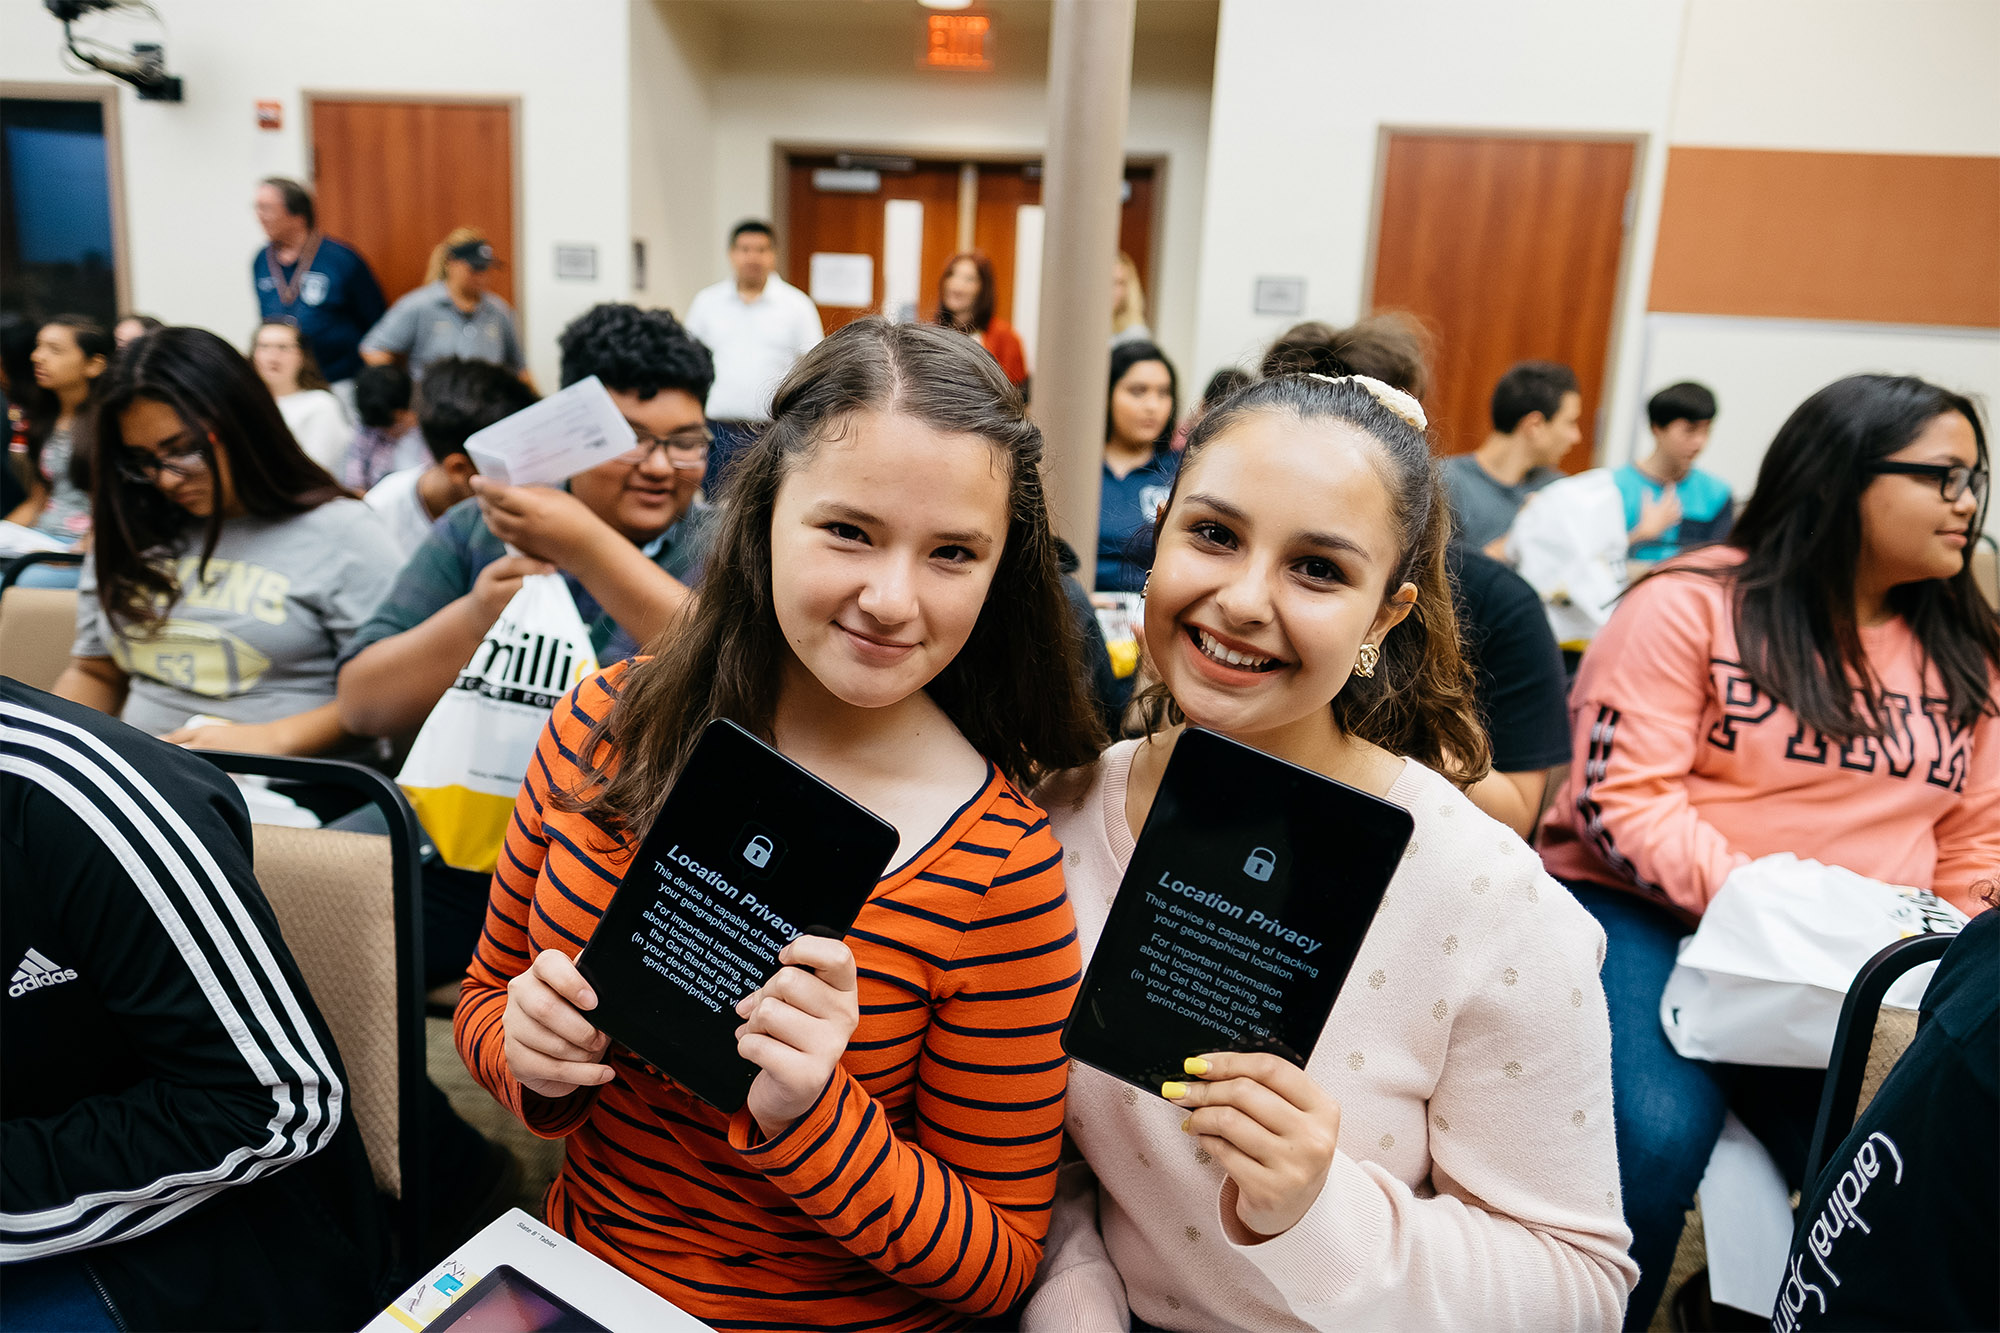 Over 200 ECHS students receive tablets from Sprint 1Million Project